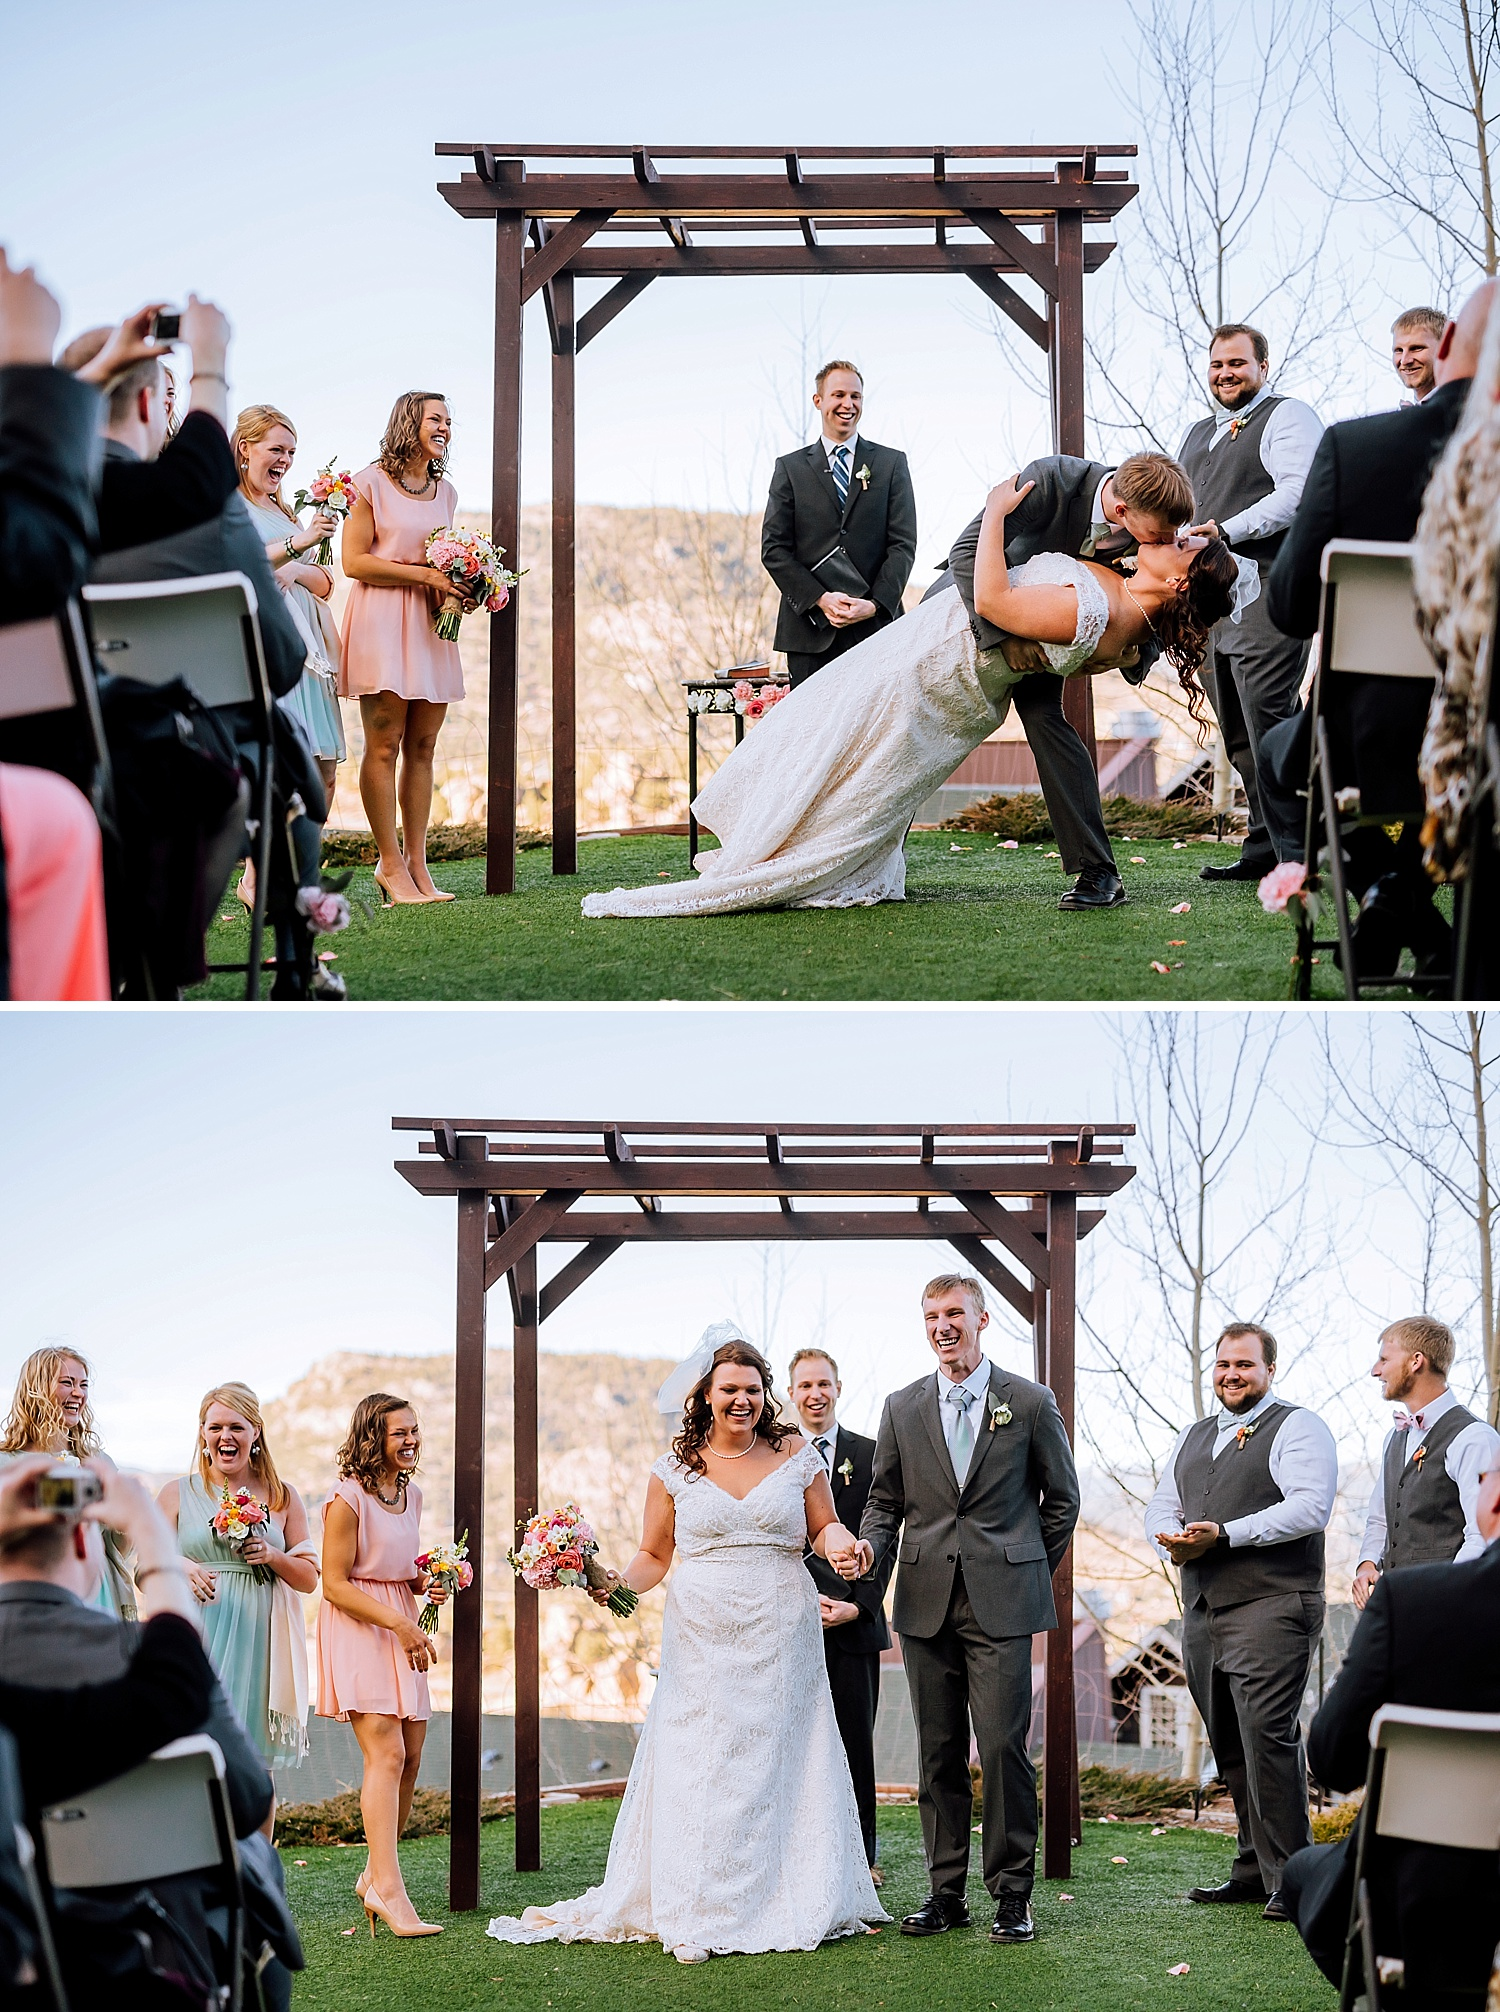 I love dip first kiss wedding photos! Mary's Lake Lodge is such a beautiful place for a wedding ceremony! Ilove Estes Park!!Photo by Maddie Mae Photography